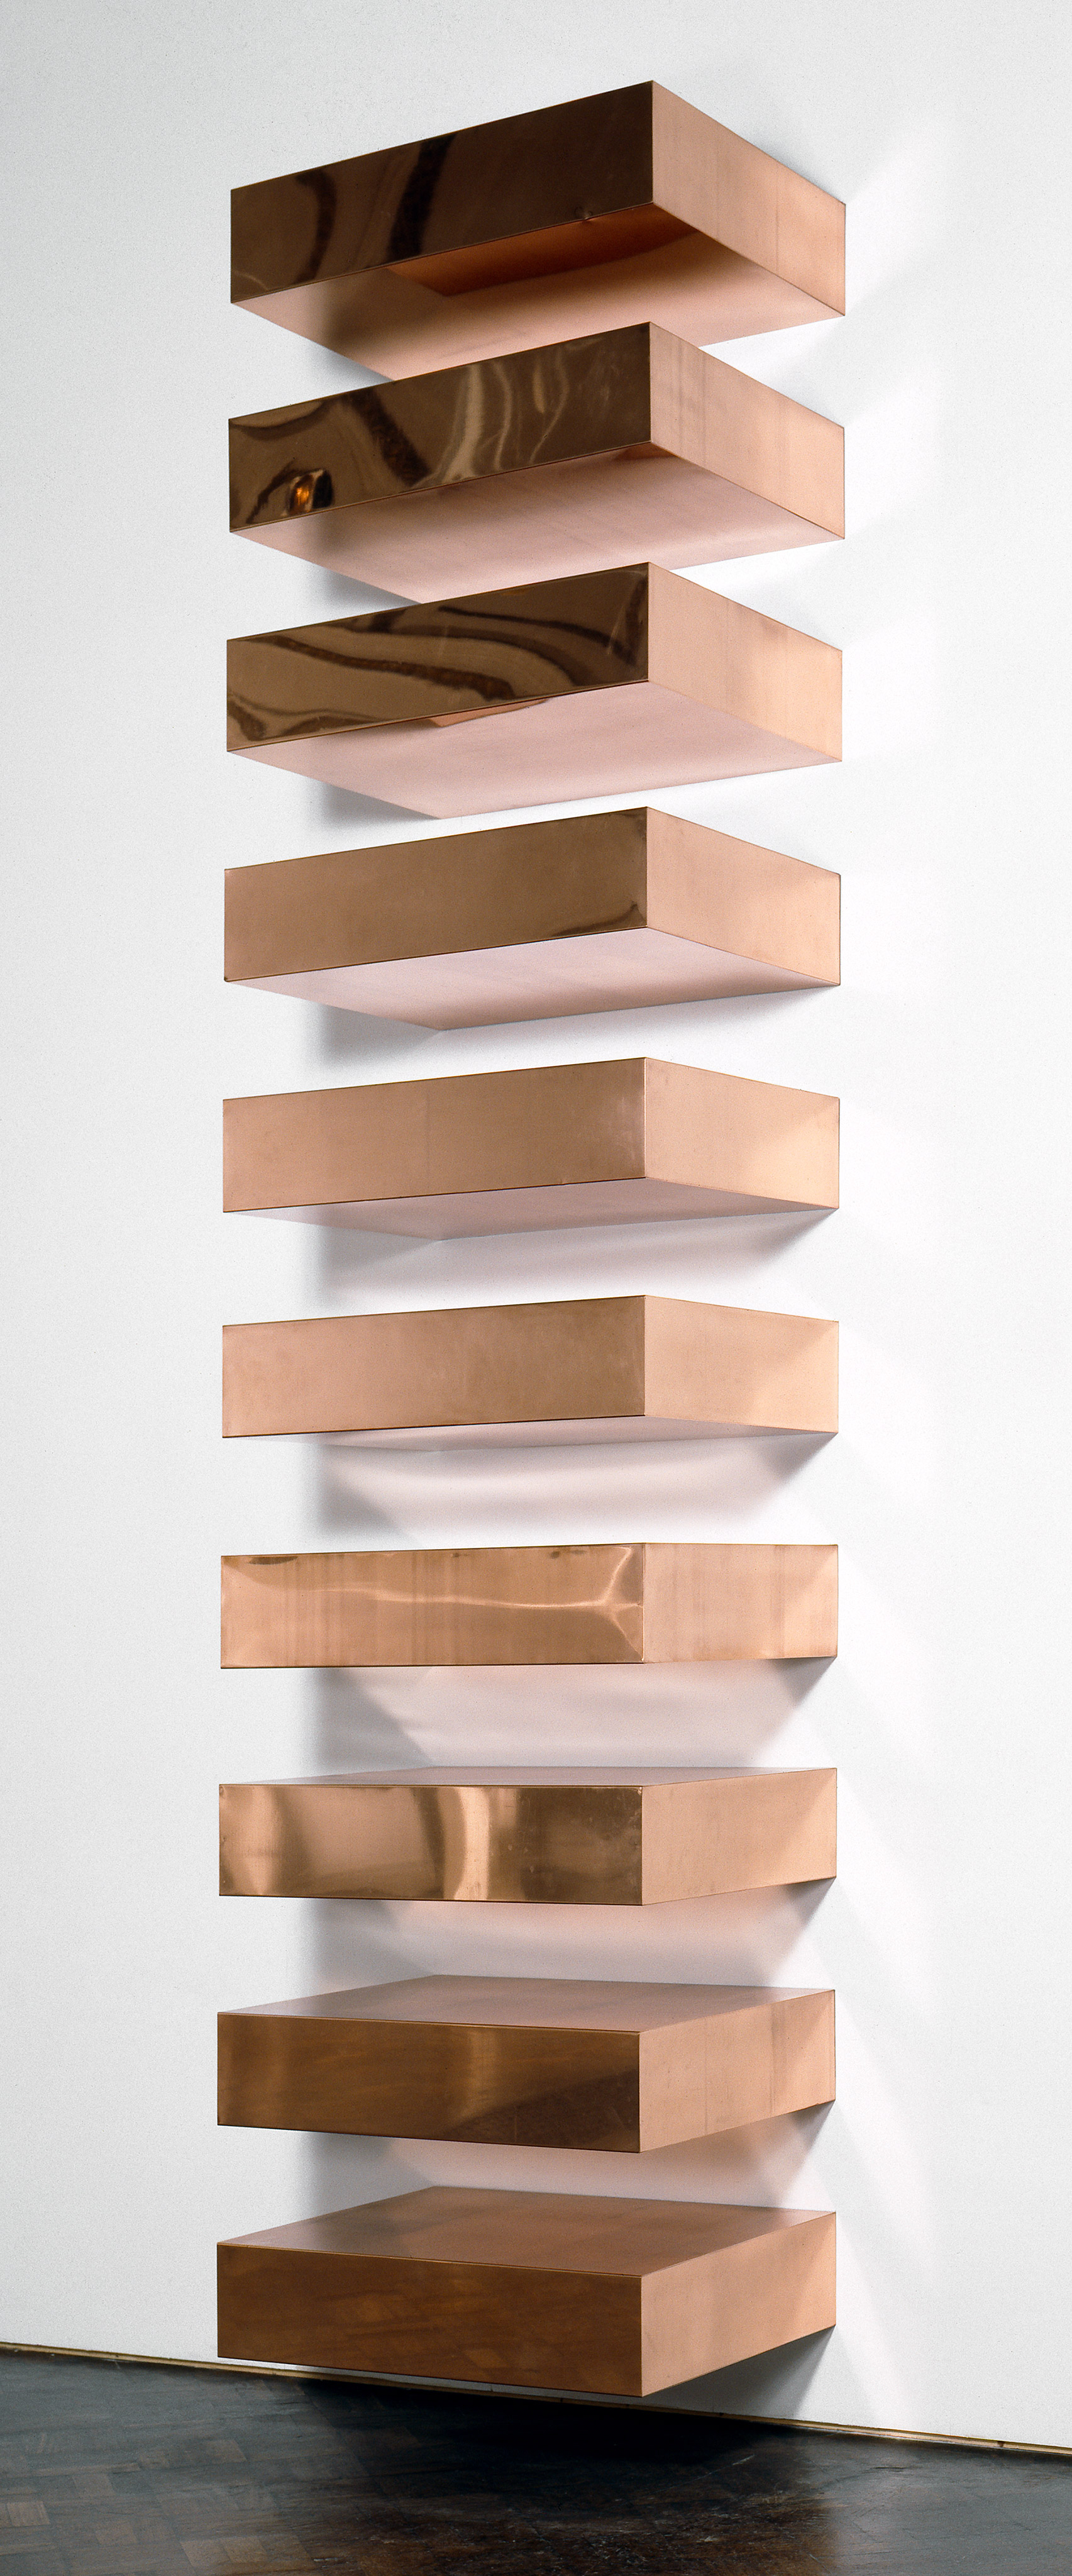 Untitled for Donald judd stack 1972